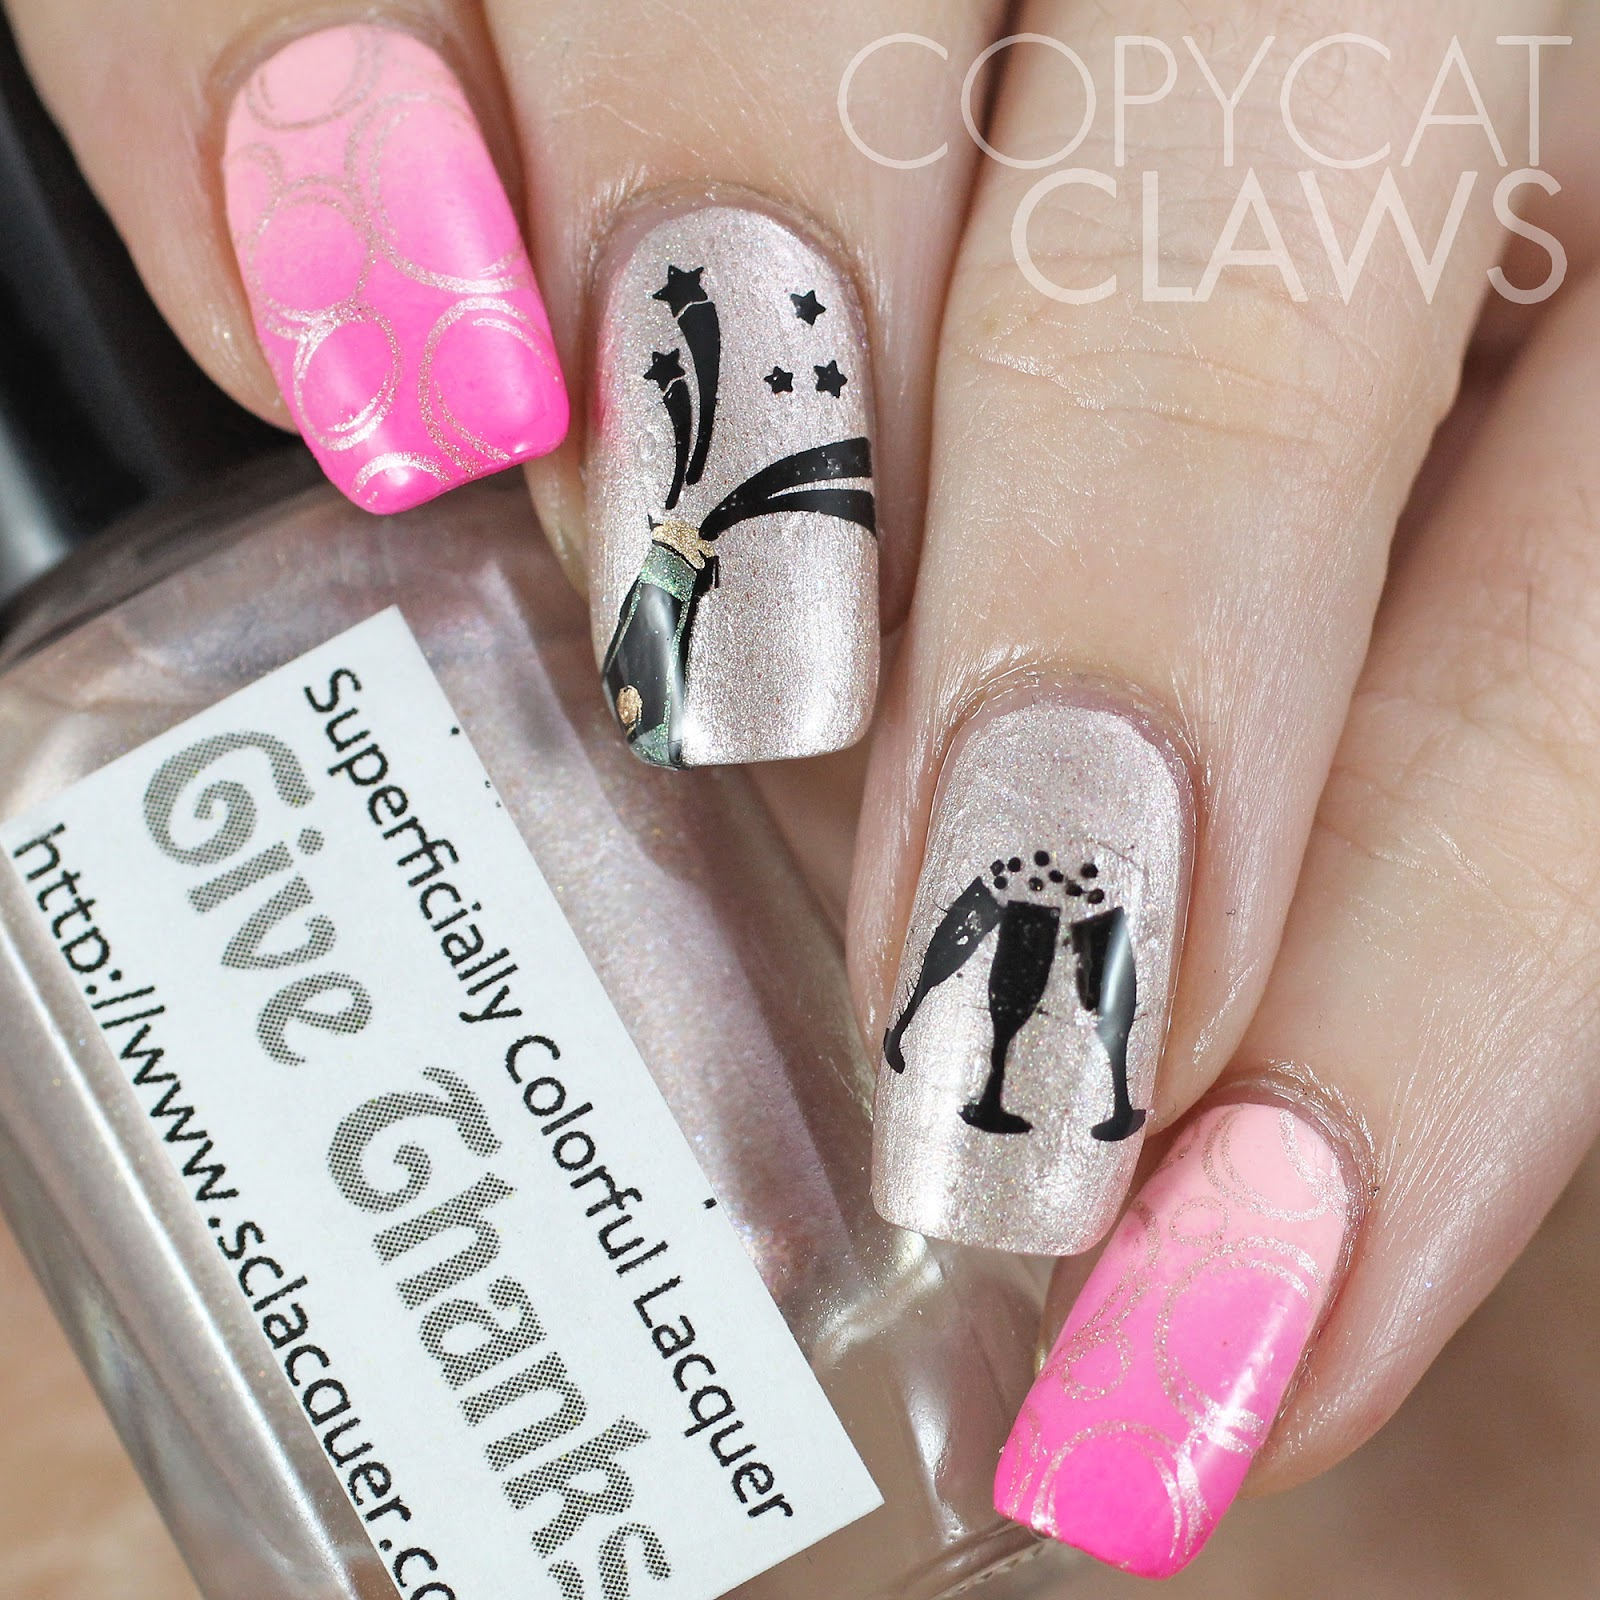 Copycat claws big little lies inspired nail art prinsesfo Choice Image